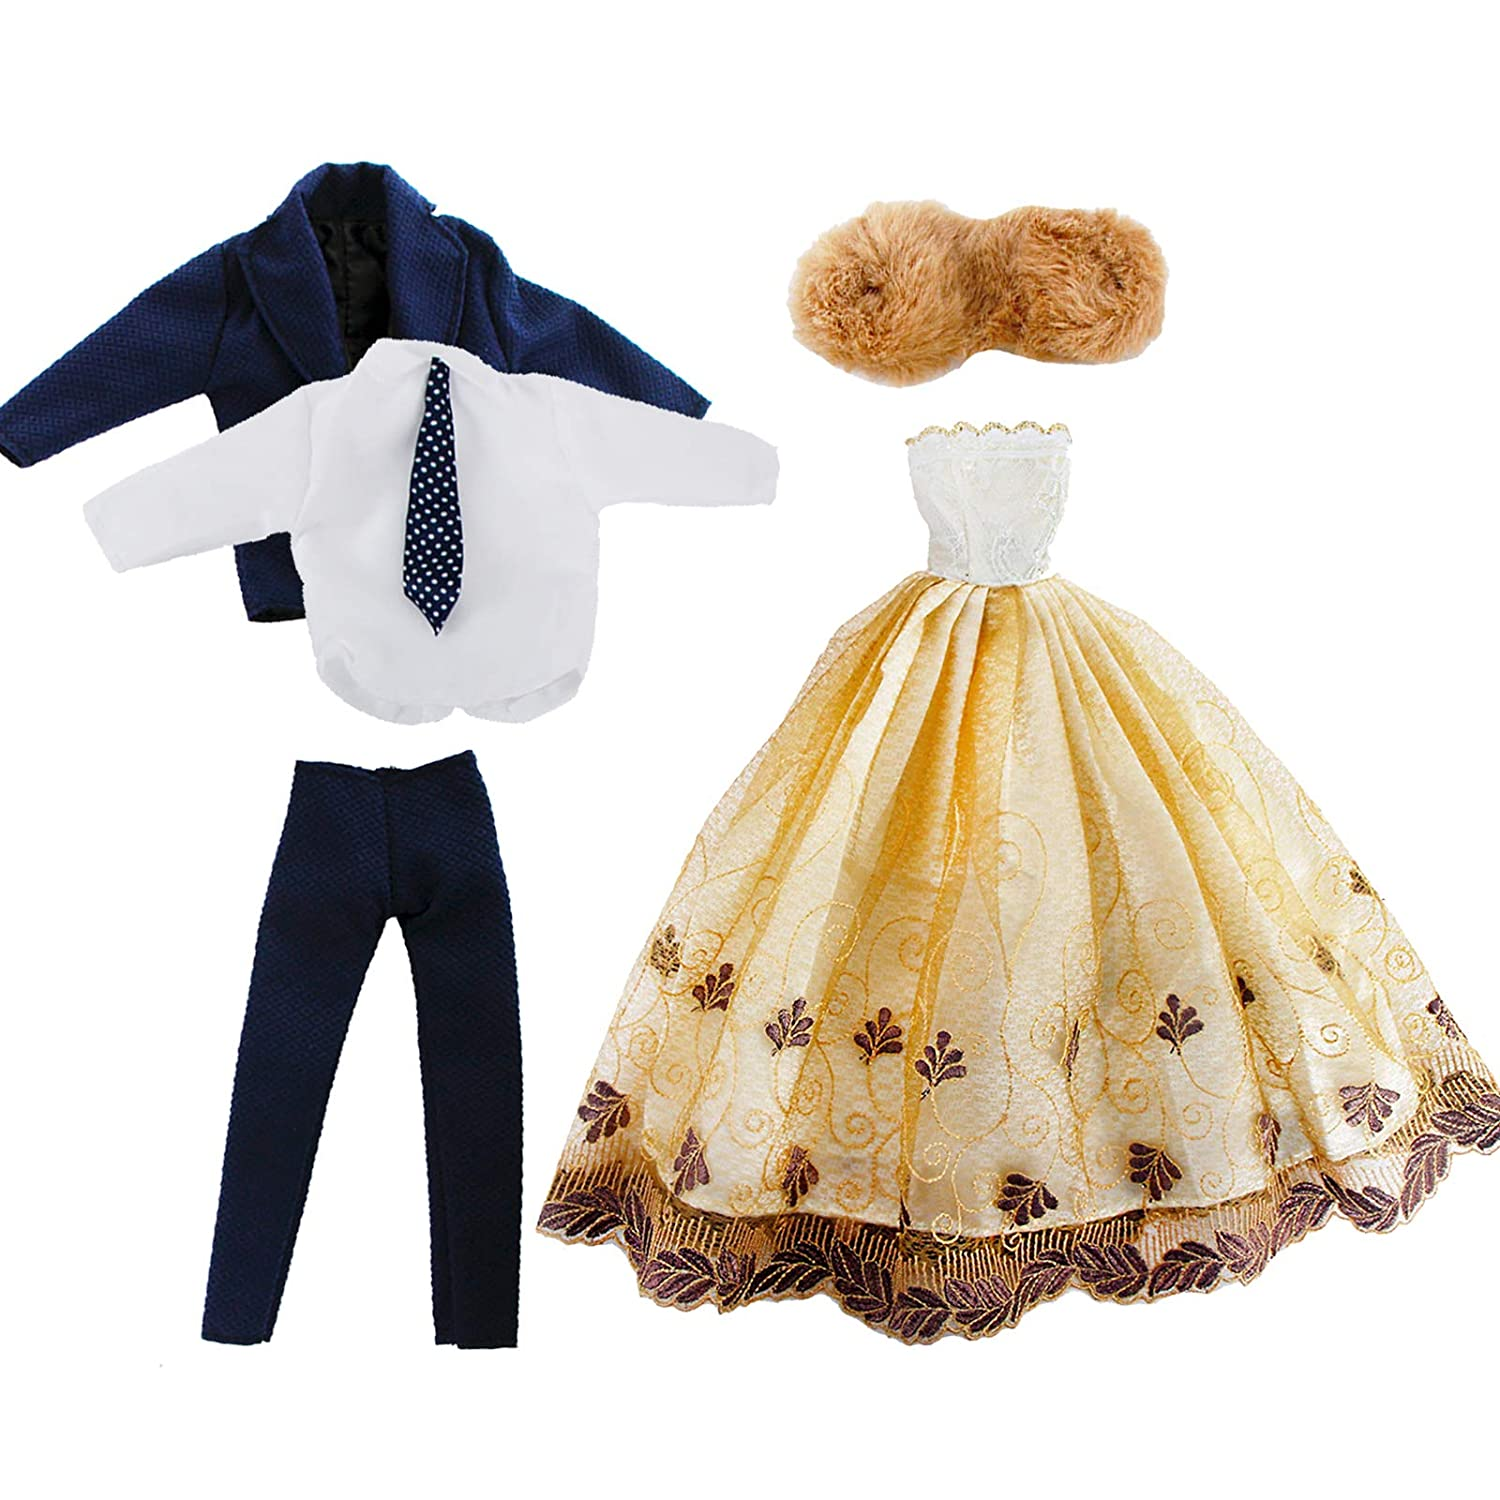 57453f860c0 Package including  1x groom outfit + 1x dress + 1x artificial fur waistcoat